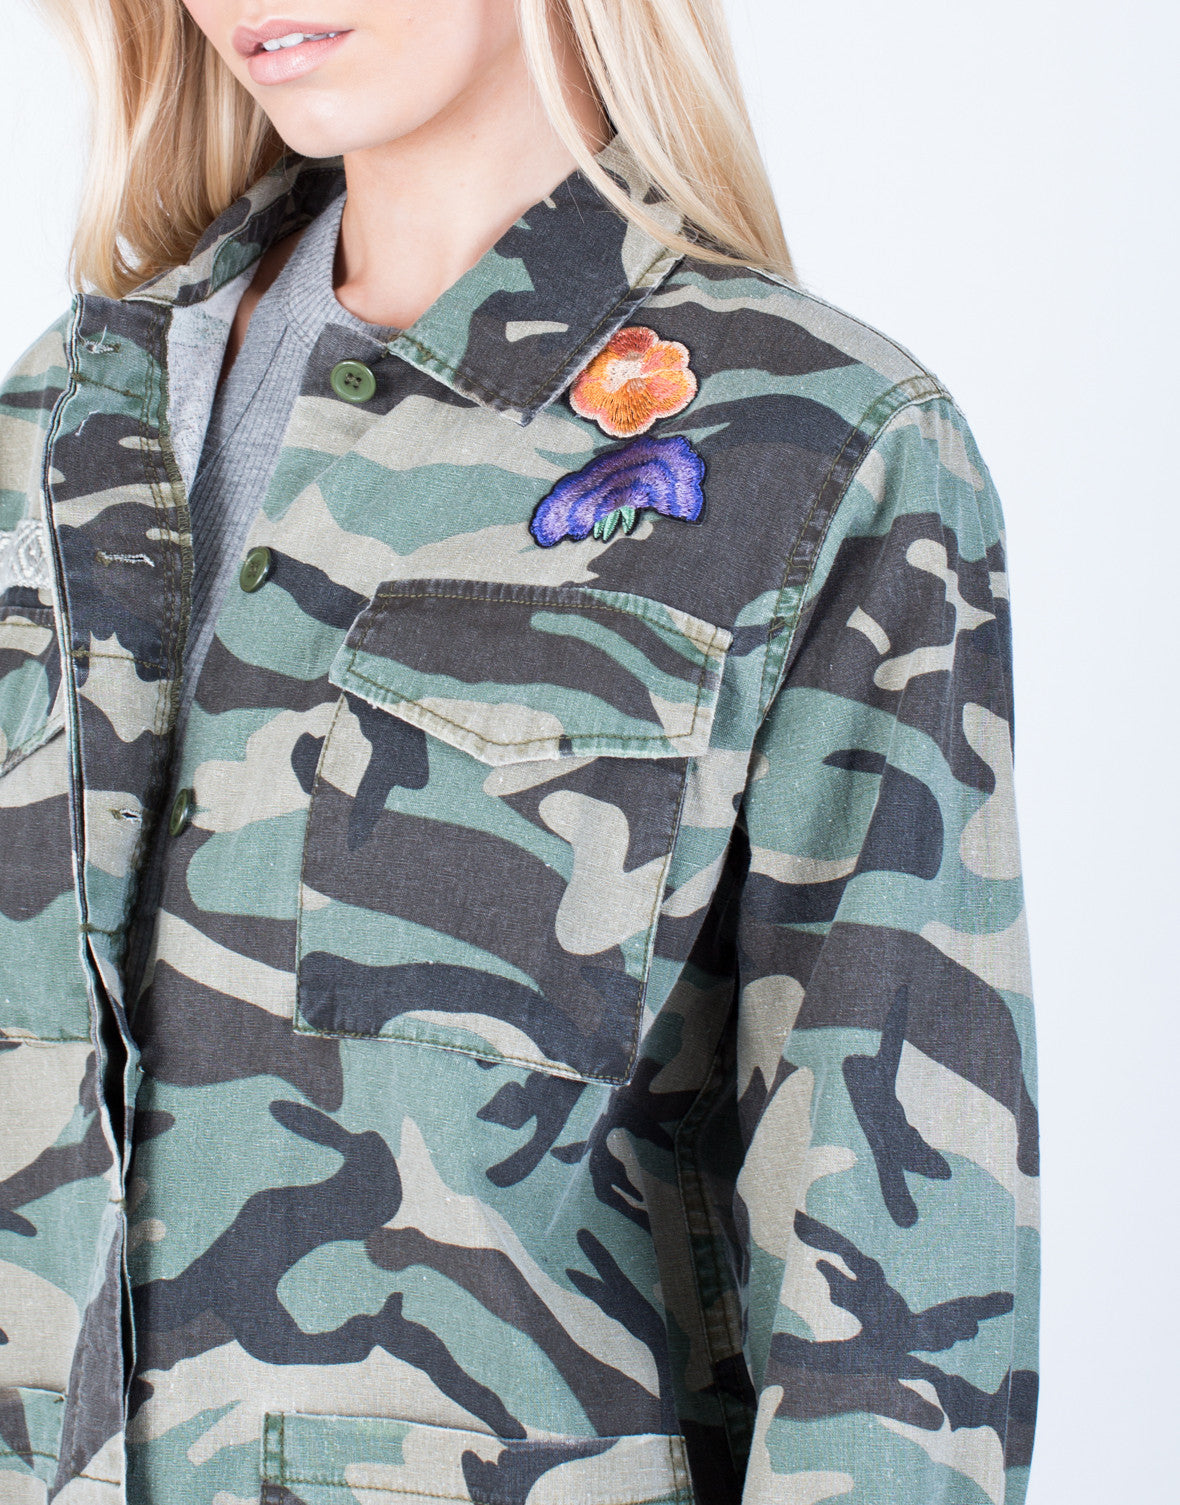 Detail of Floral Patched Camo Jacket